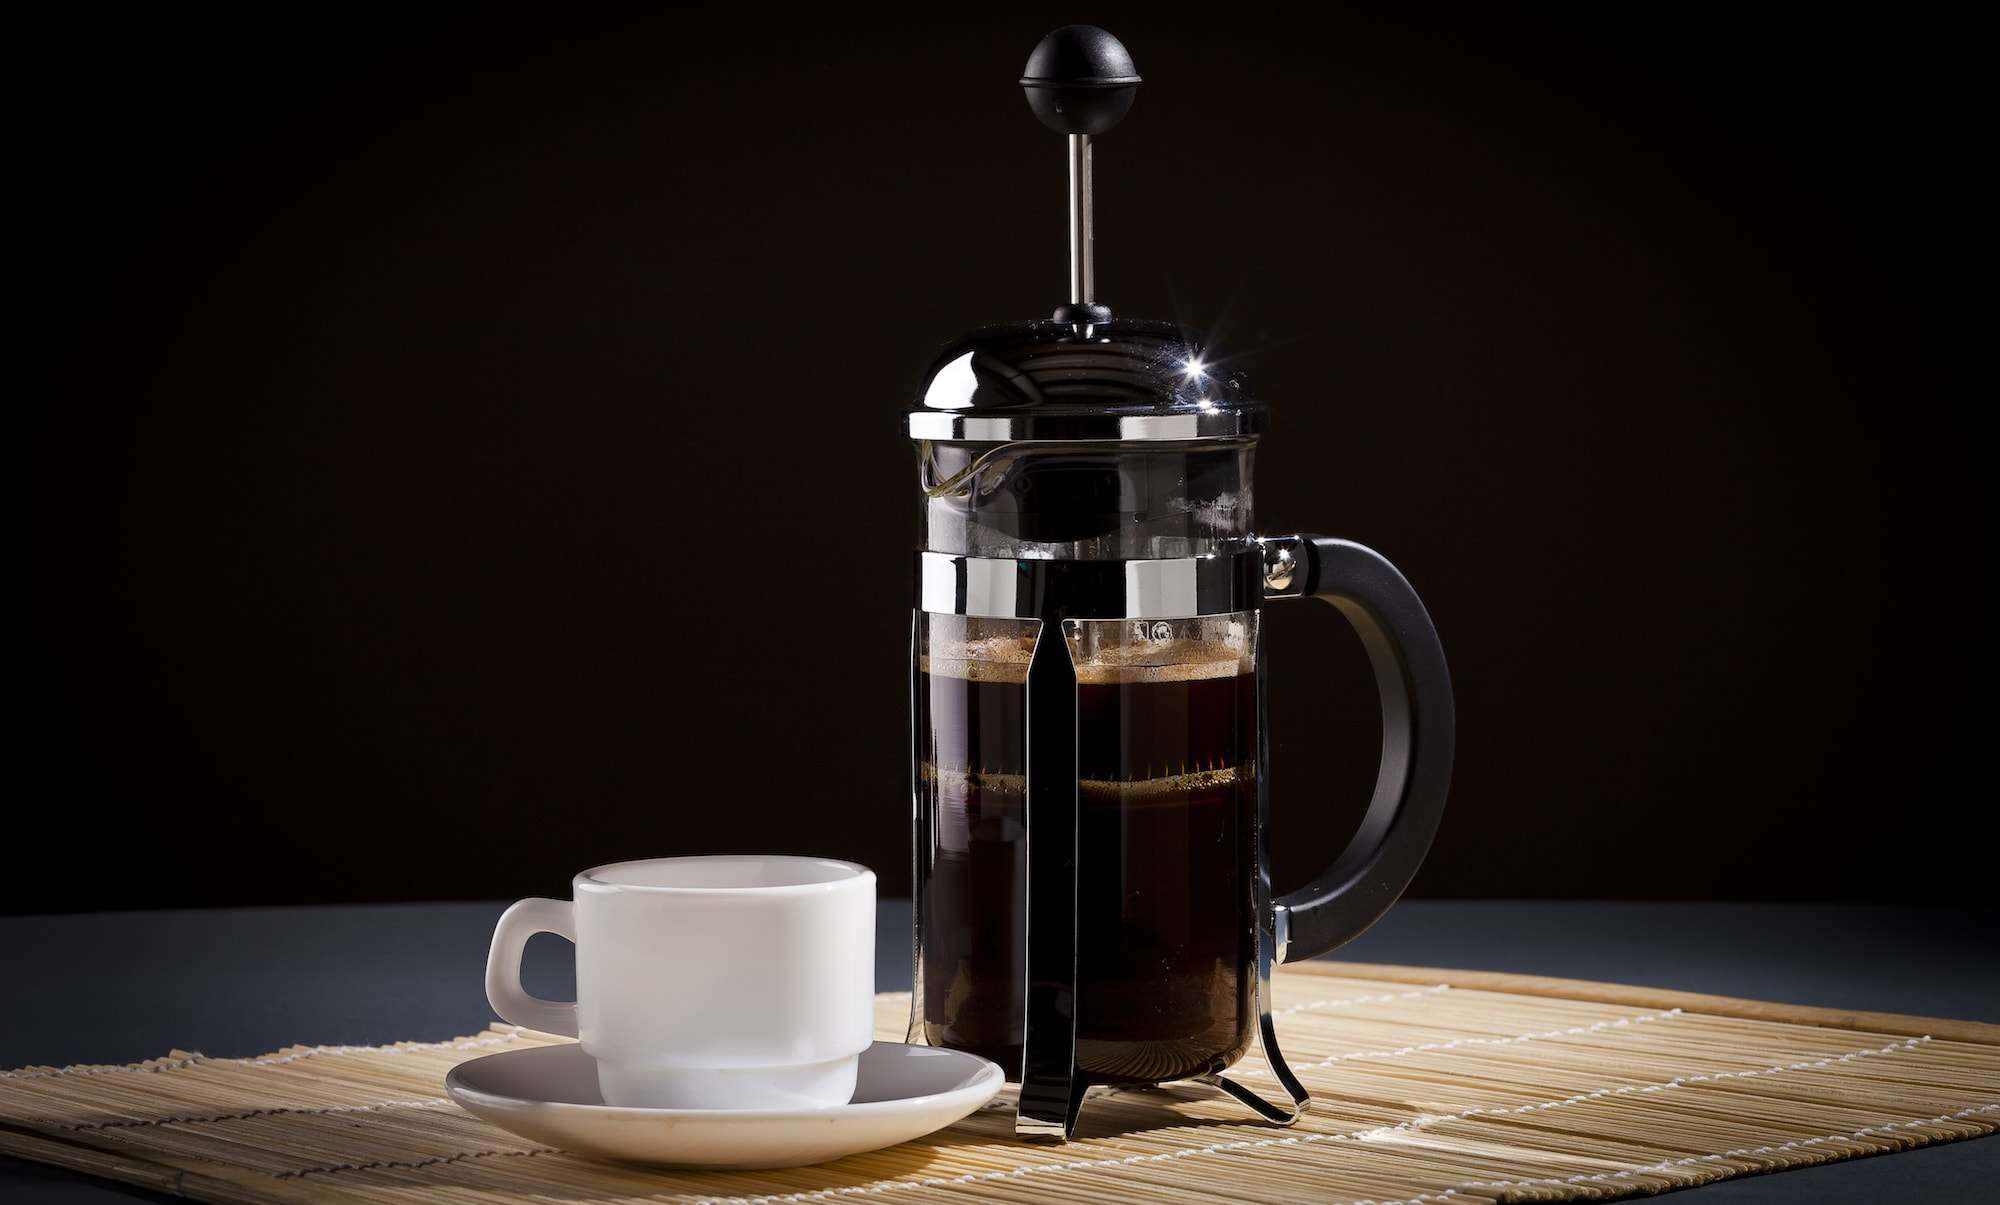 Top 10: Best French Press Coffee Makers of 2020